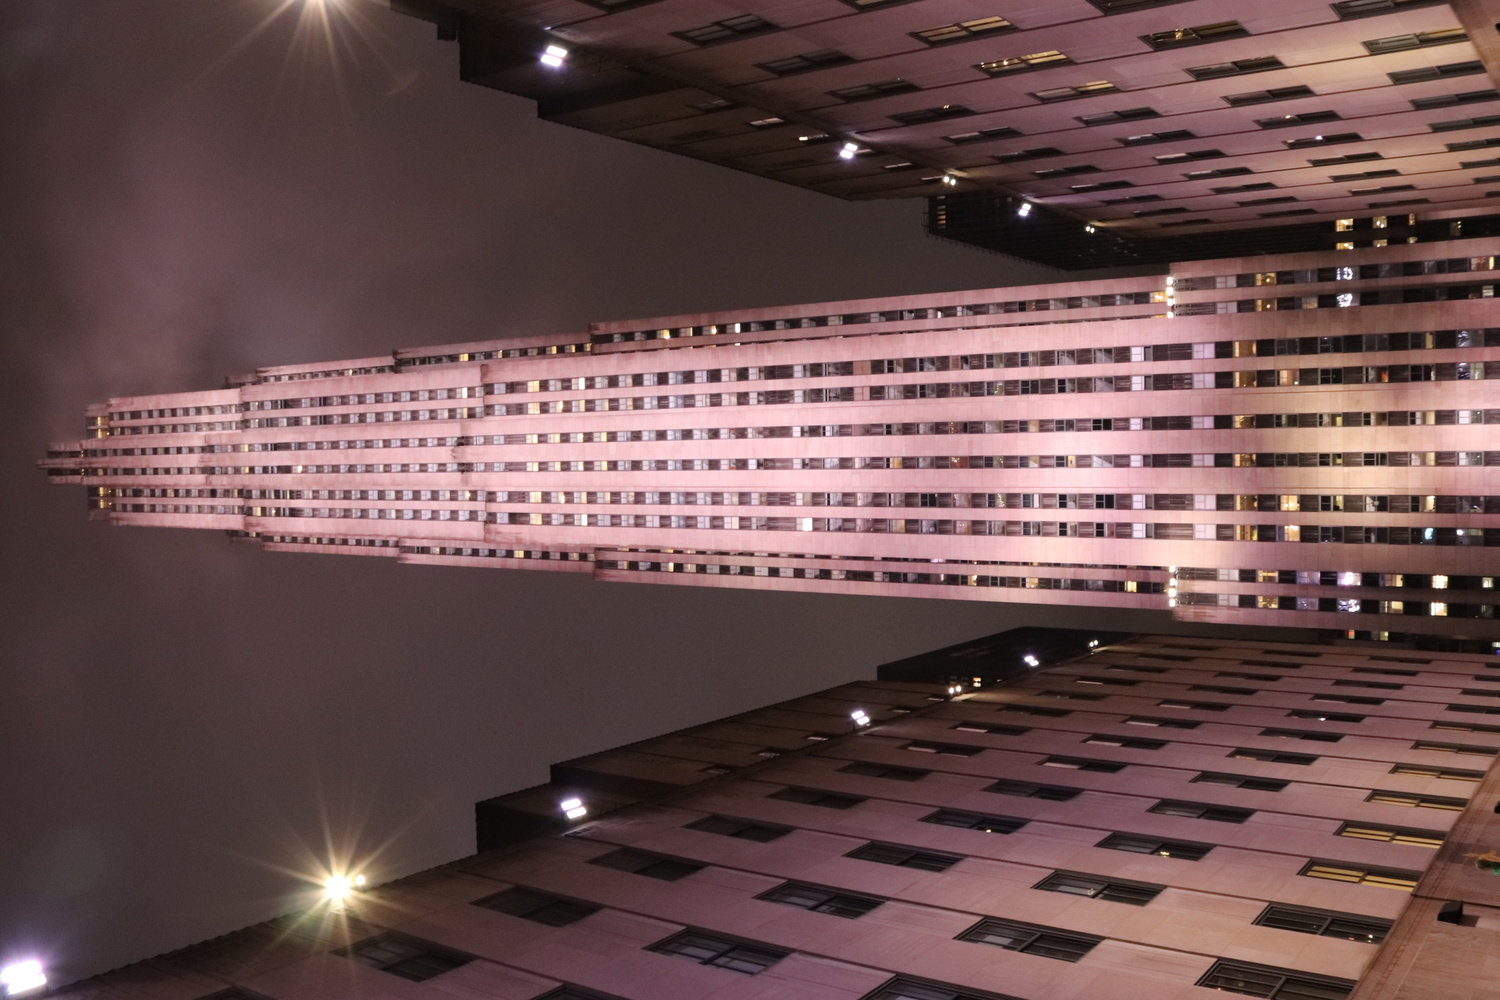 Rockefeller Centre by Drew Coulson